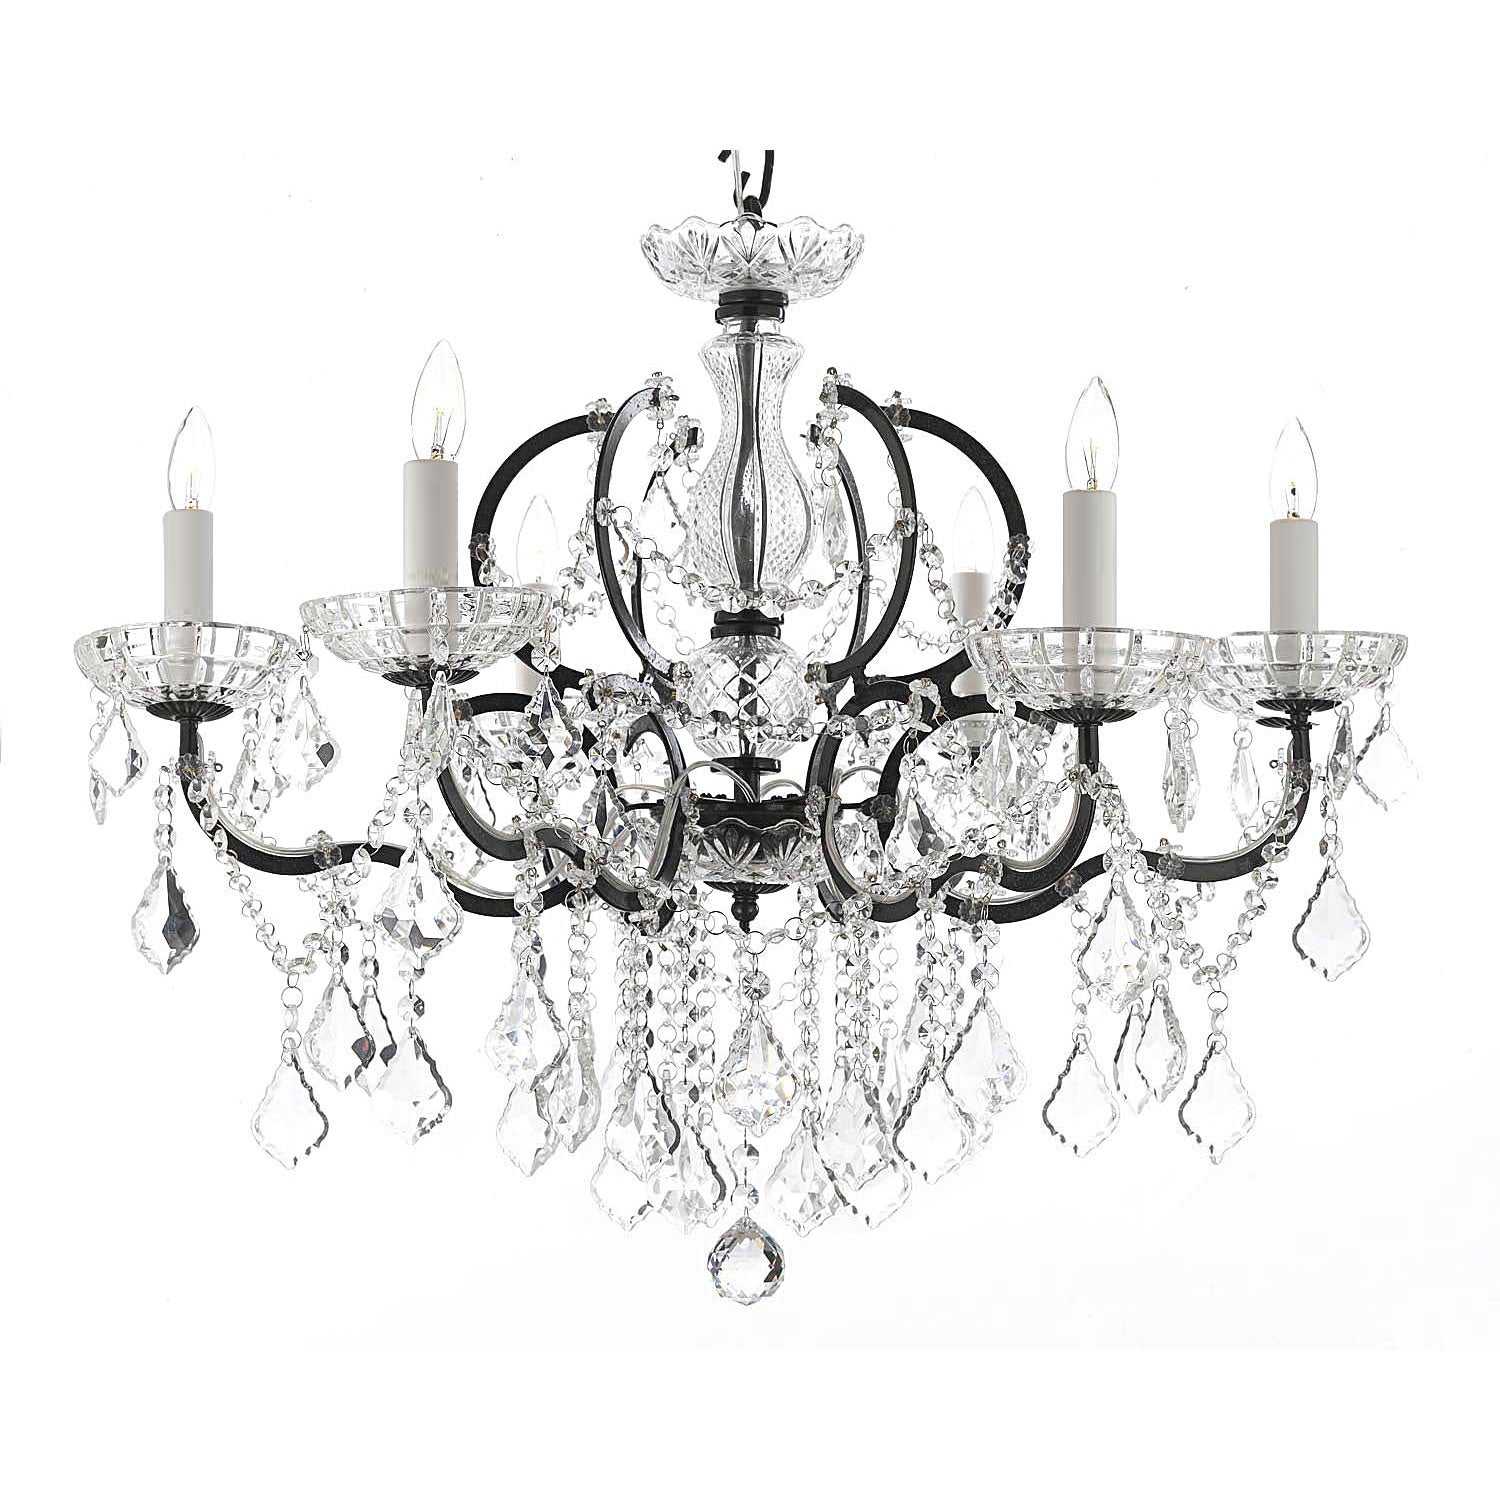 Gallery Rococo 19th C 6 light Black Wrought Iron and Crystal